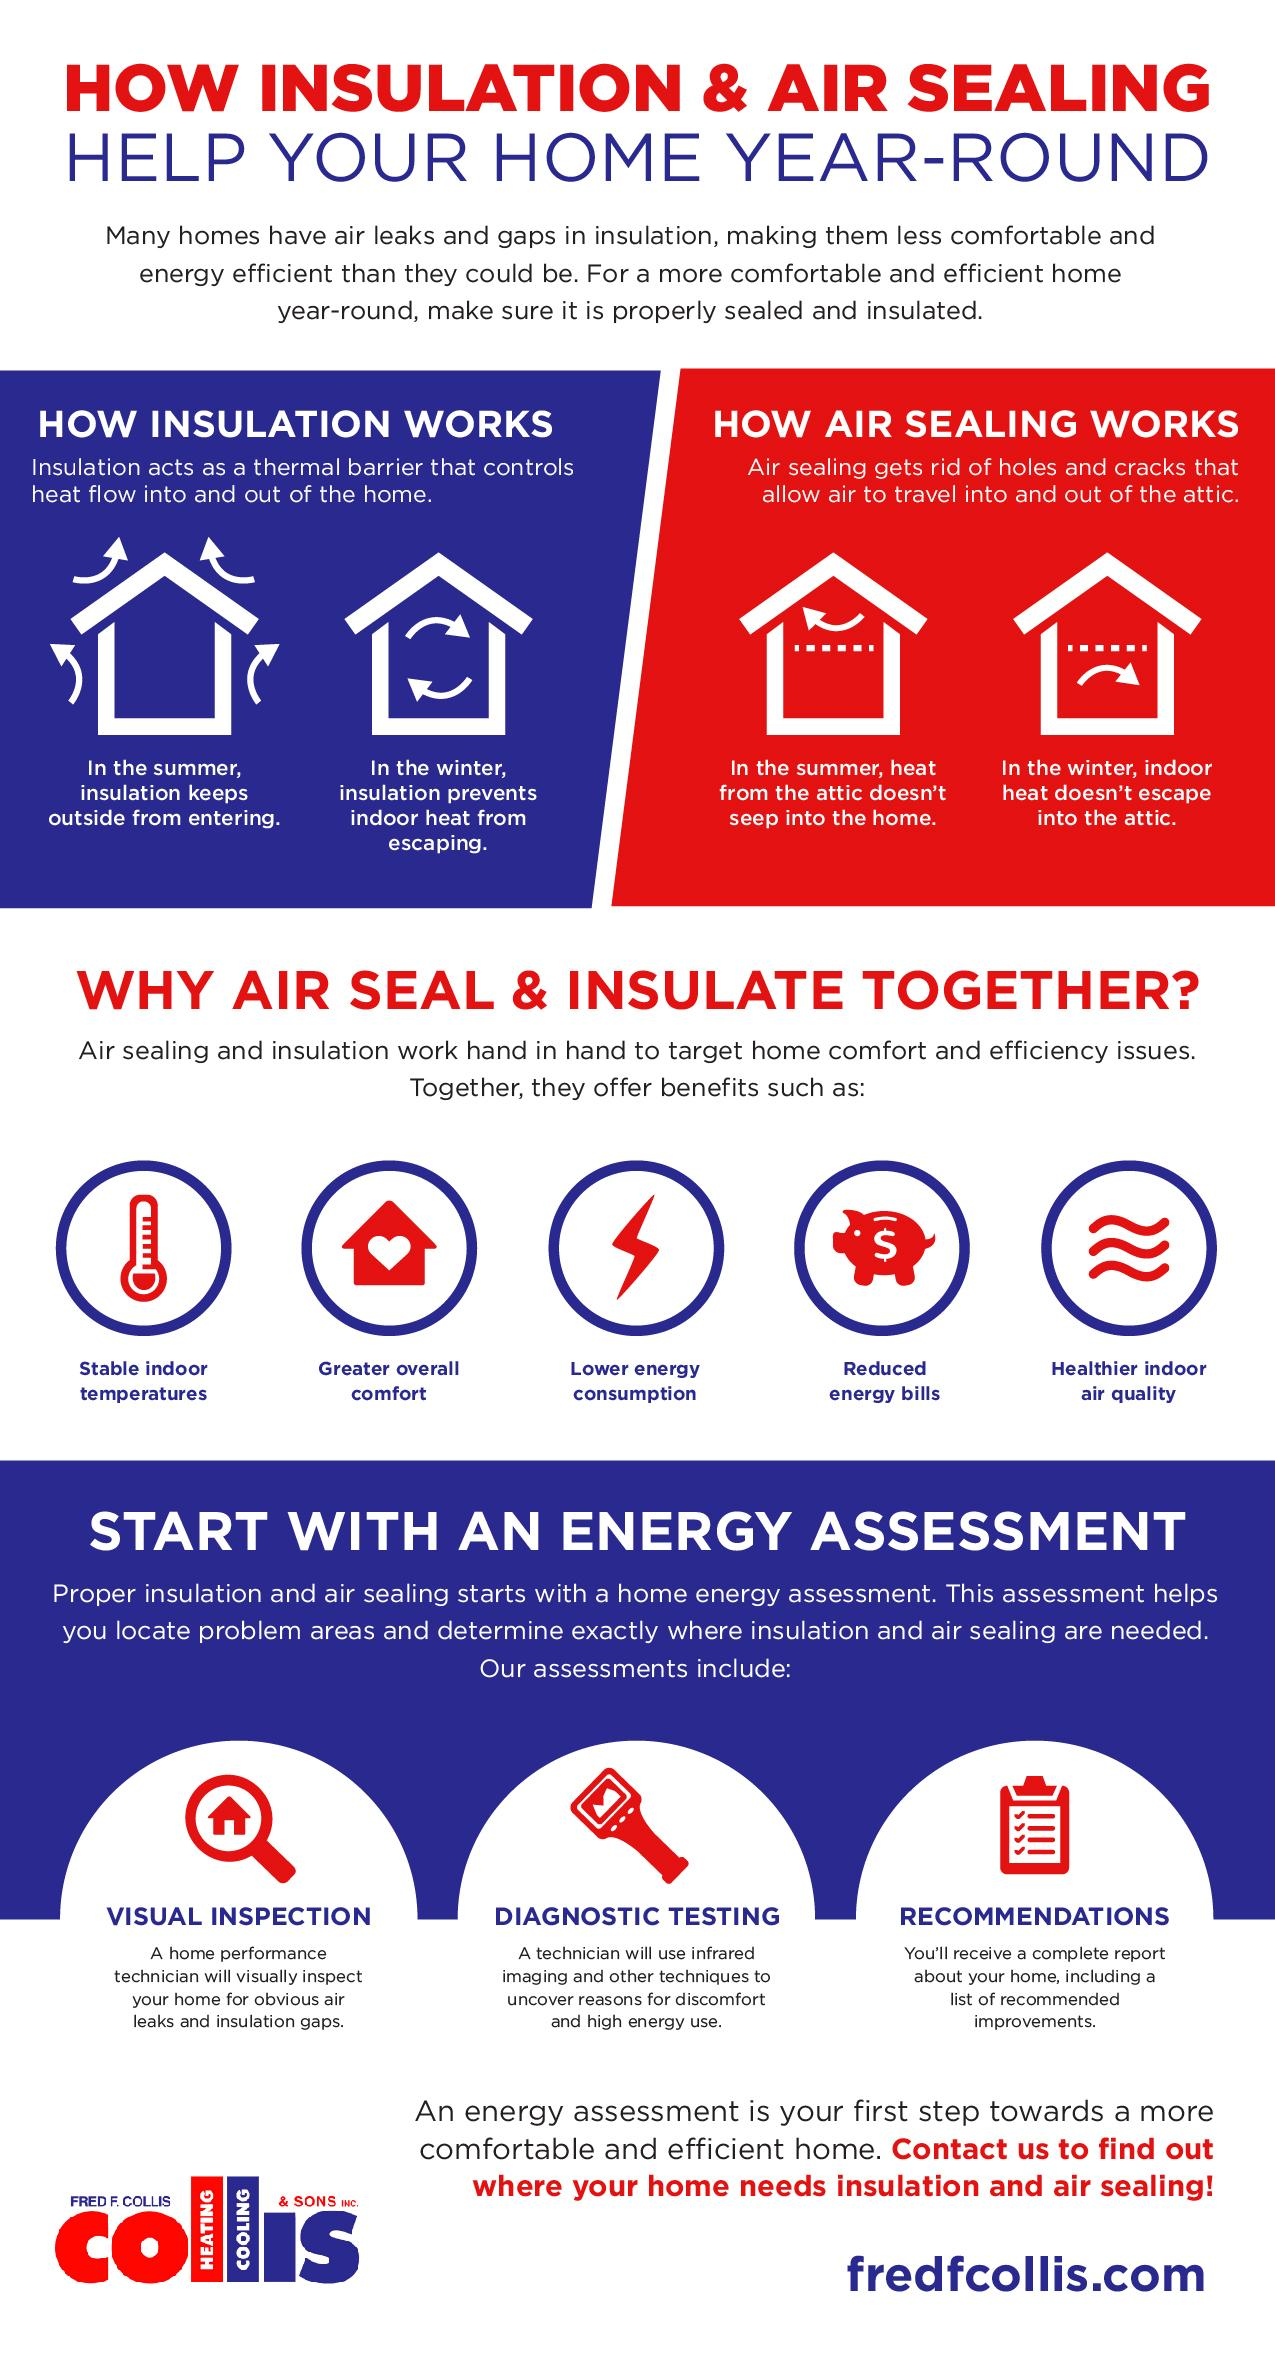 infographic describing the relationship between insulation and air sealing